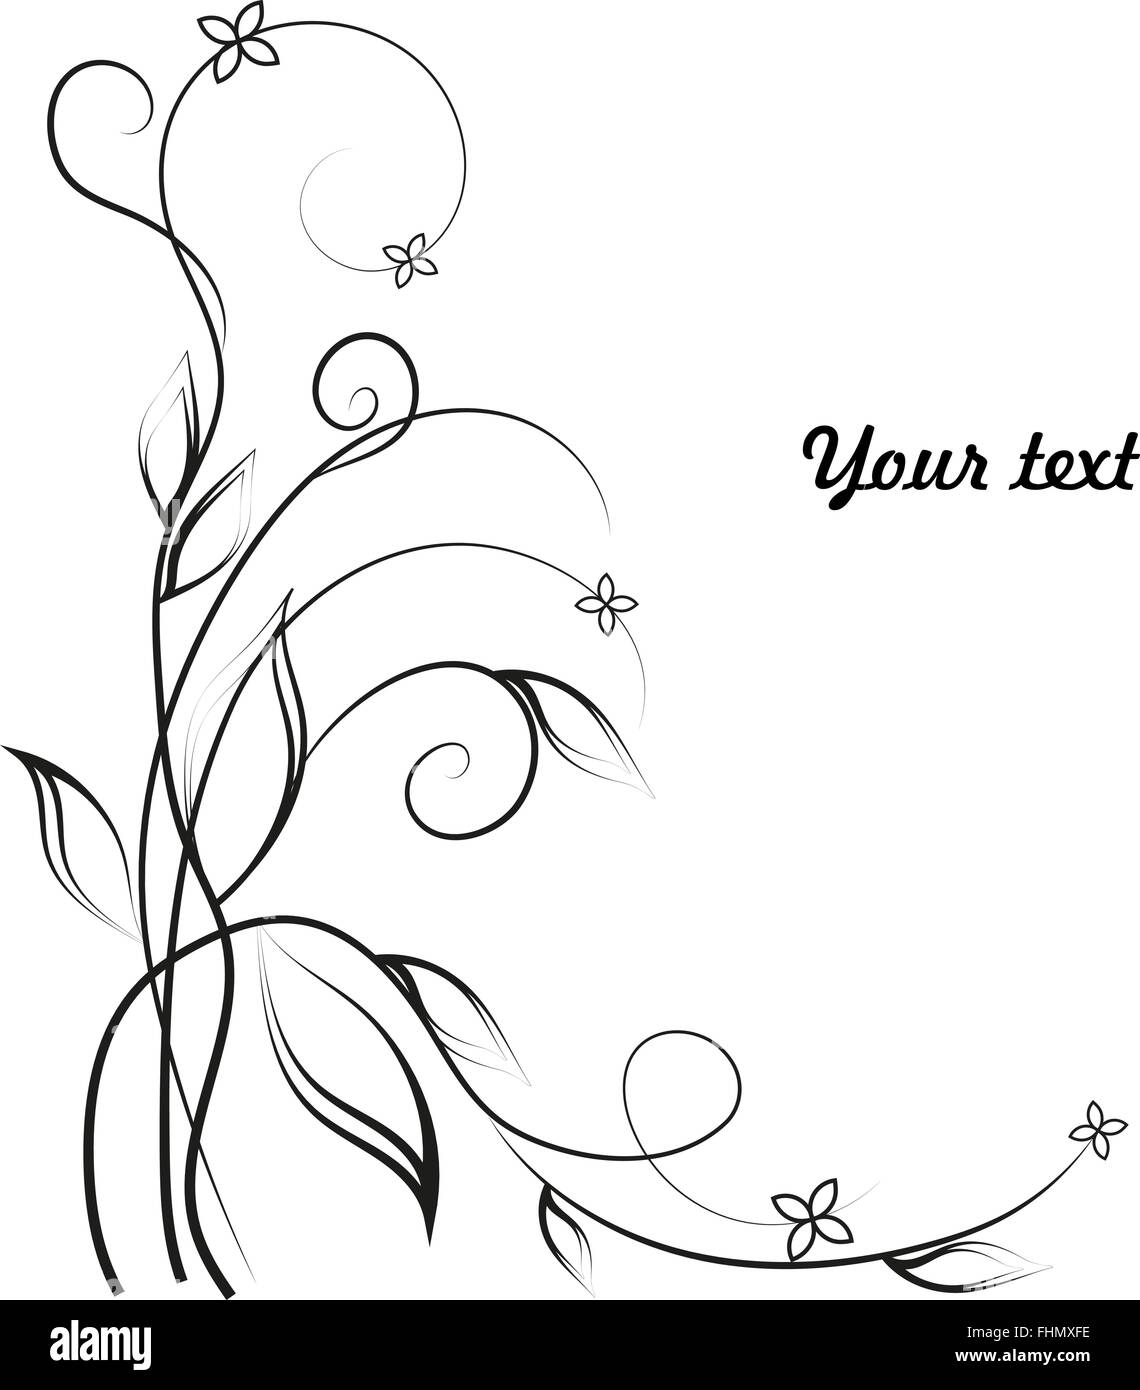 Simple Floral Background In Black And White Stock Vector Art